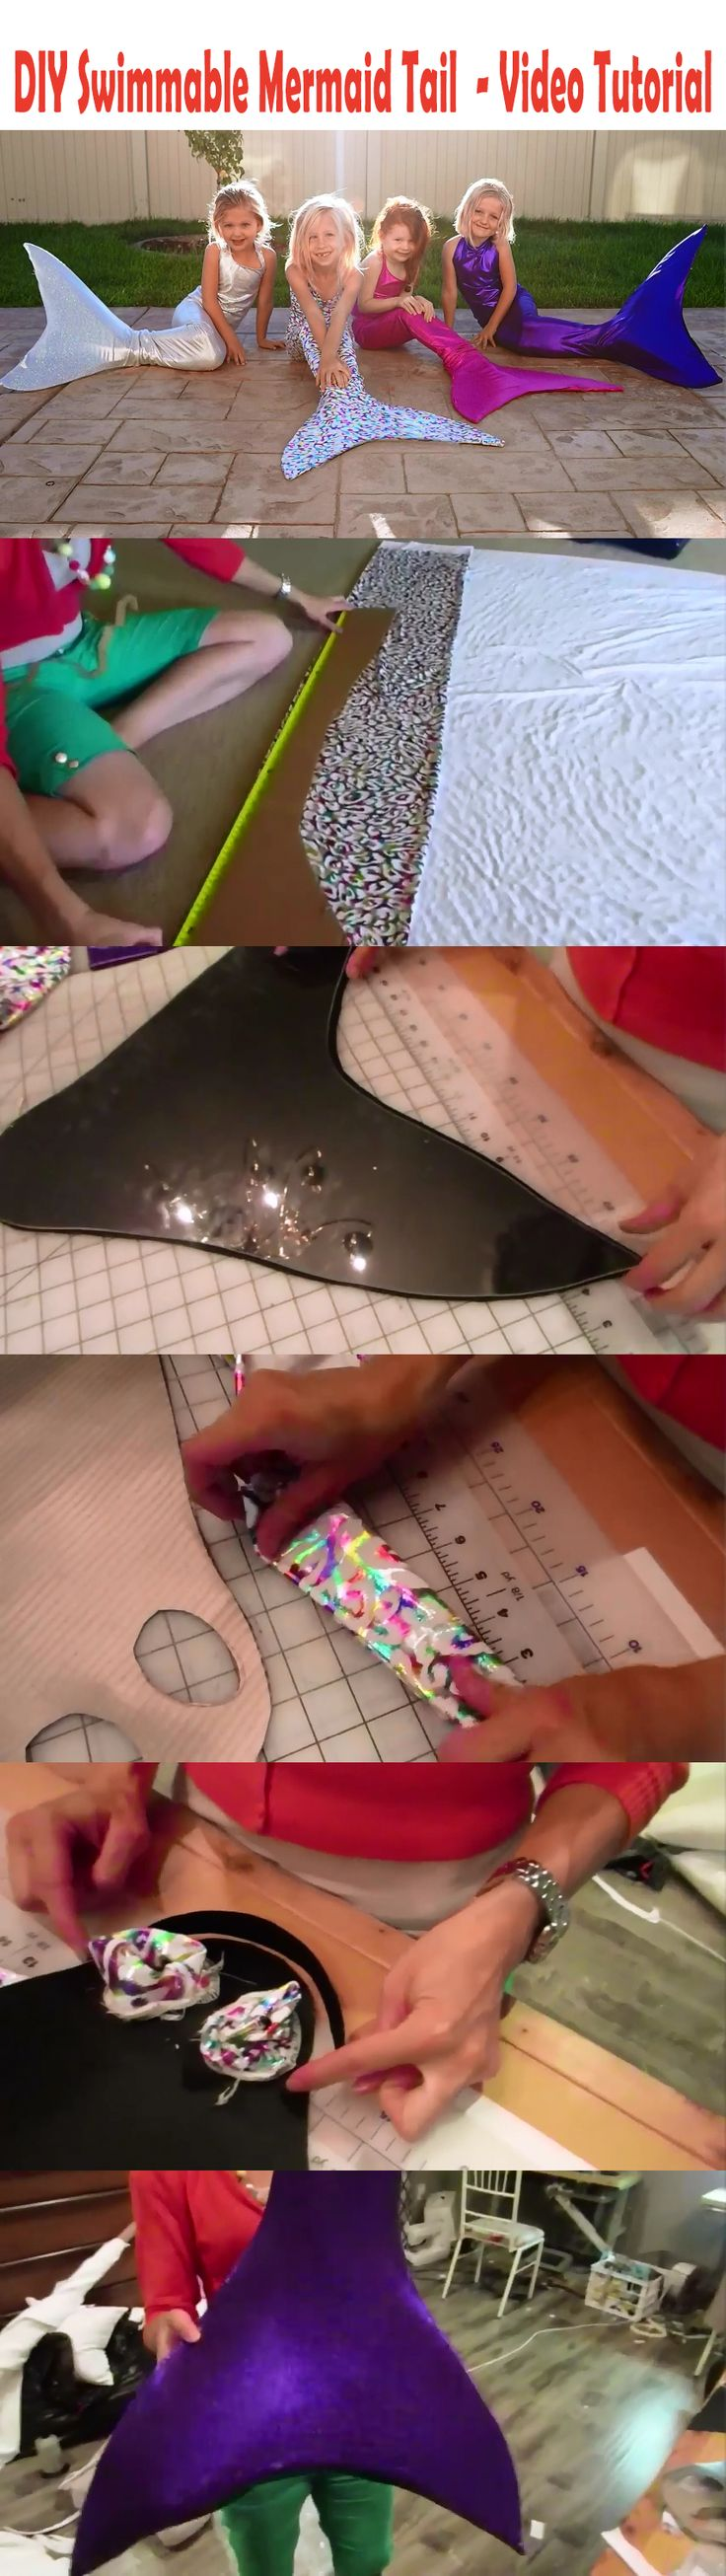 How to make a Swimmable Mermaid Tail for under $25 - Video Tutorial